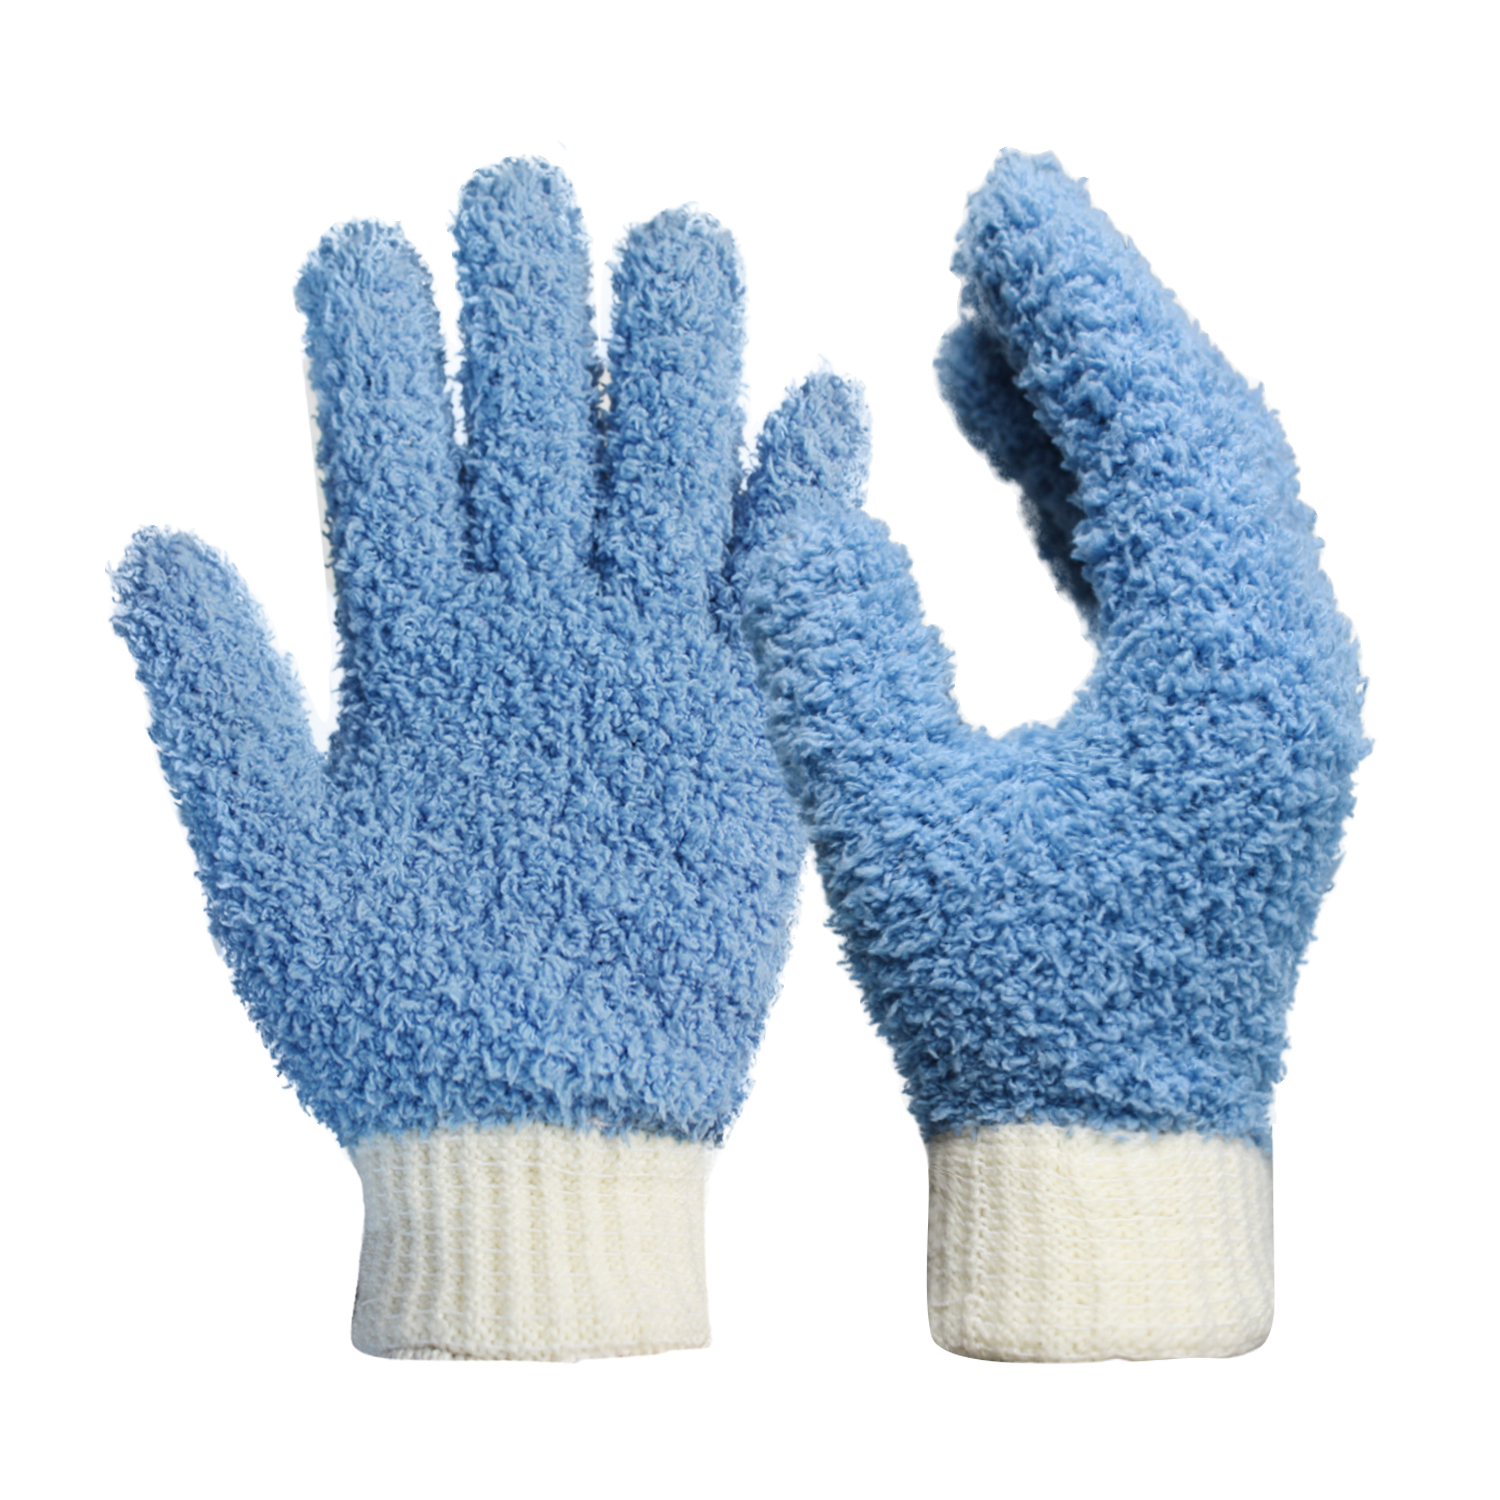 100% Microfiber Polyester Cotton Rib Cuff Dust Cleaning Clean Room Gloves